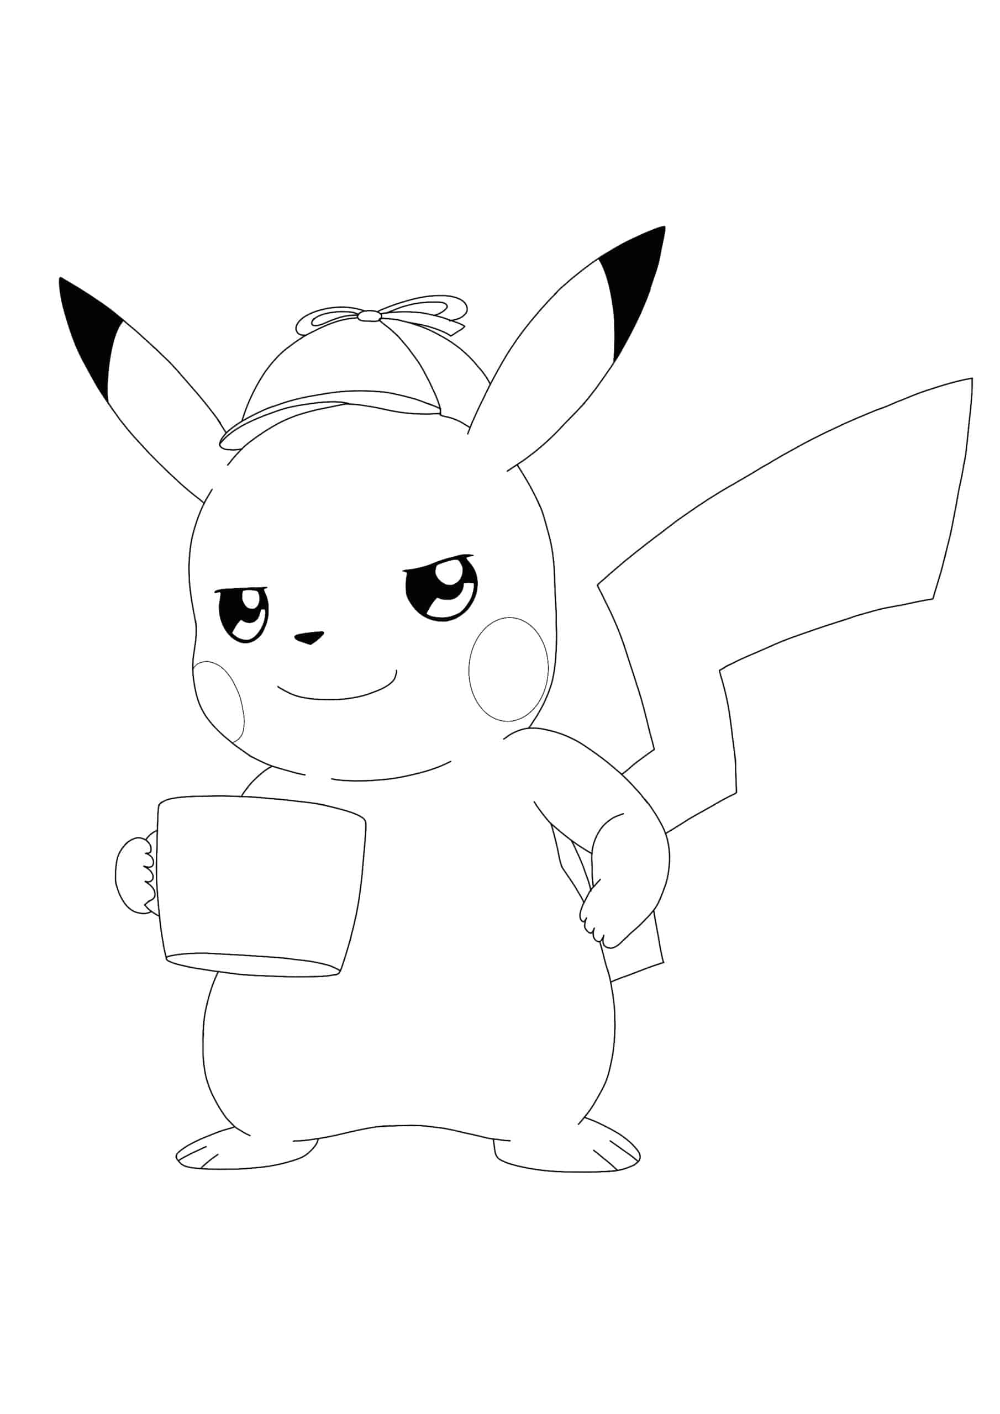 Pokemon Printable Coloring Pages Pikachu Through The Thousands Of Images On The Net Rega Pikachu Coloring Page Cartoon Coloring Pages Pokemon Coloring Sheets